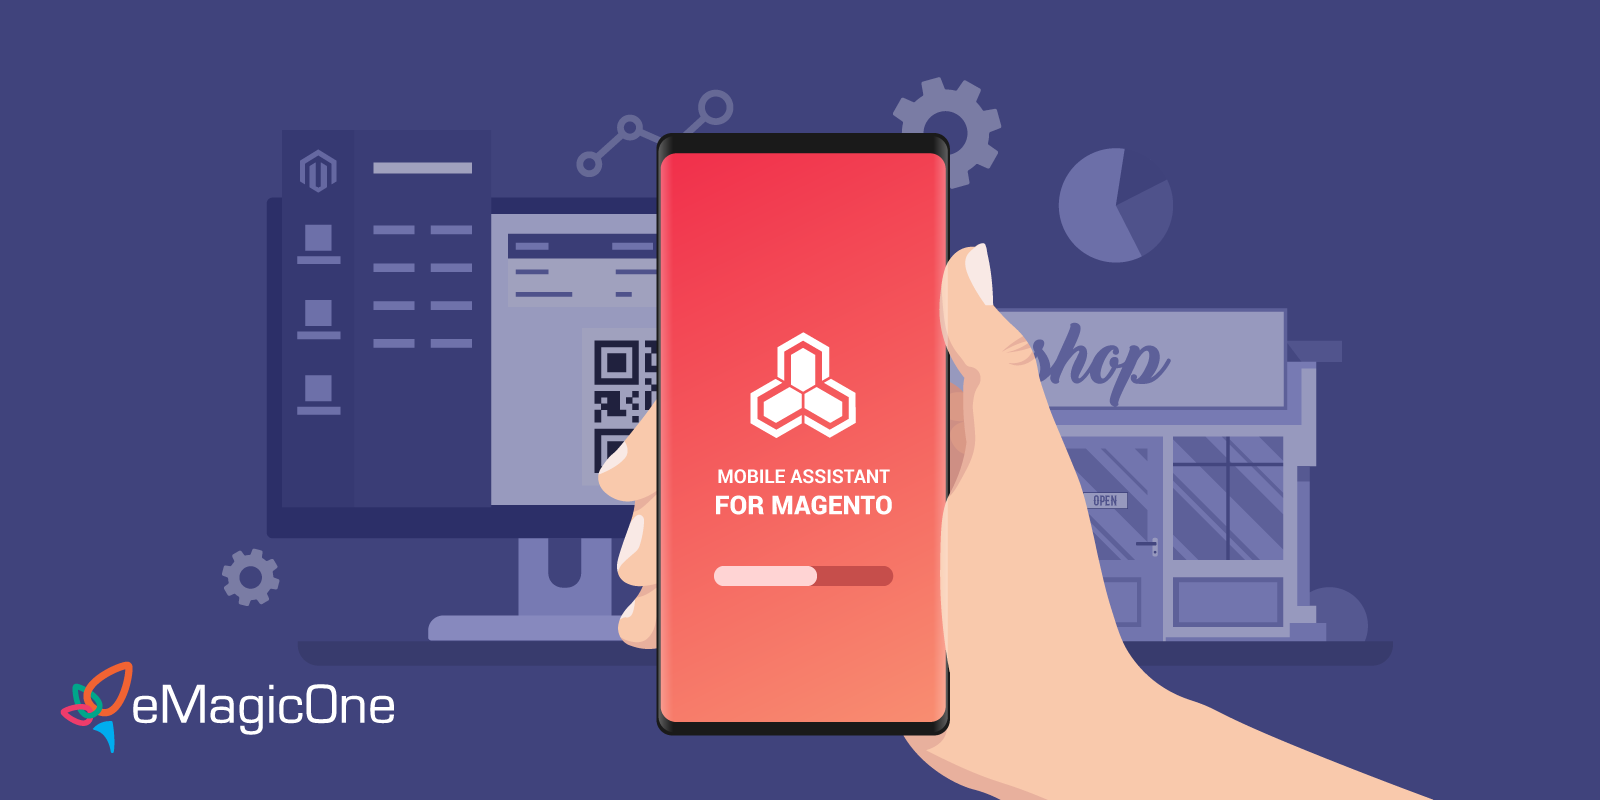 How to Run Magento Mobile Assistant Efficiently